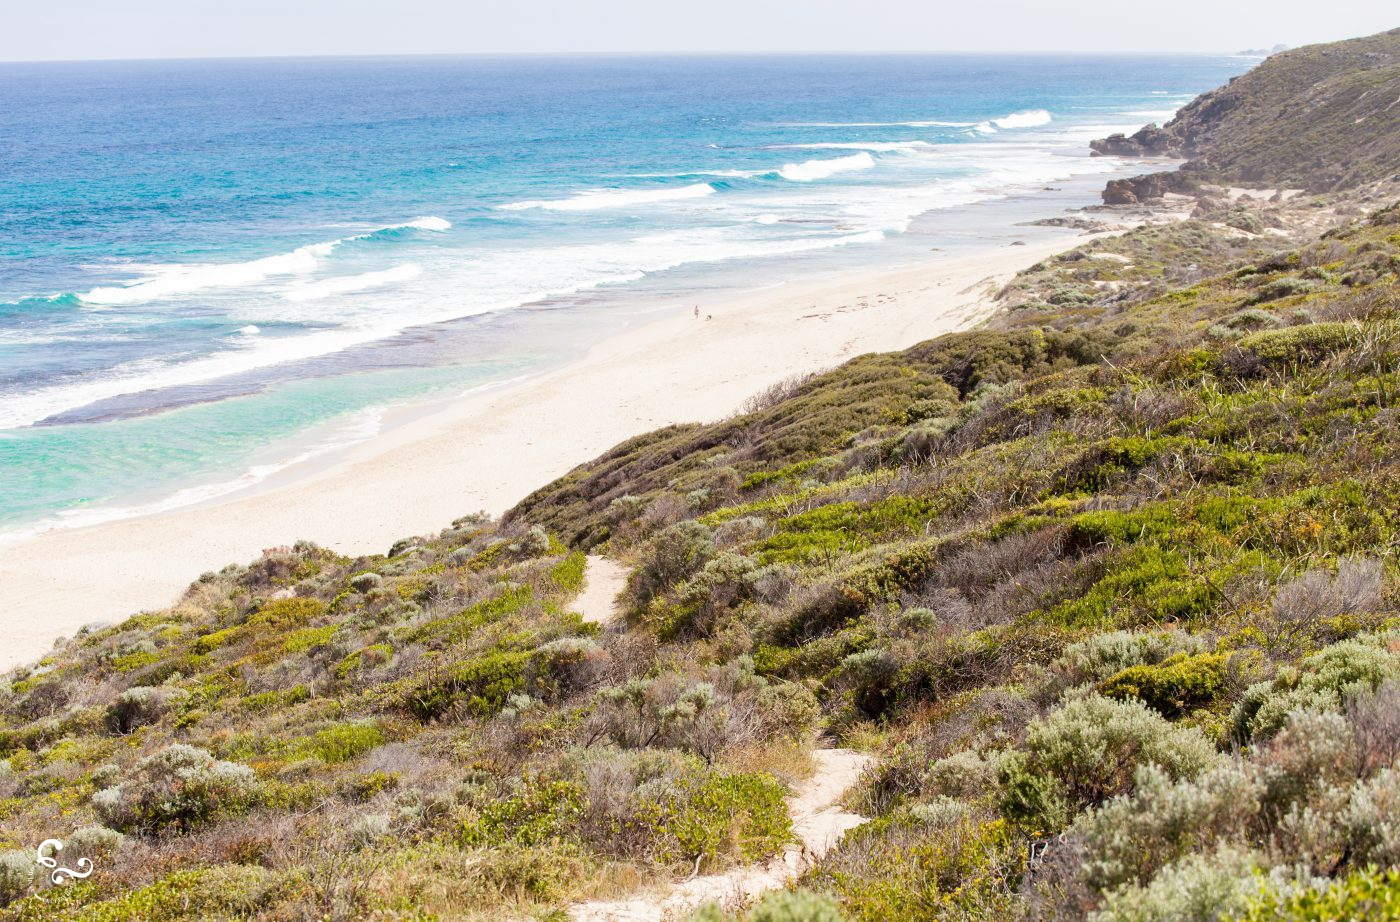 Dunsborough Yallingup Down South WA Beaches Surfing Western Australia Perth Nowhere & Everywhere Lis Dingjan Photography Prints #justanotherdayinwa South West Instagram